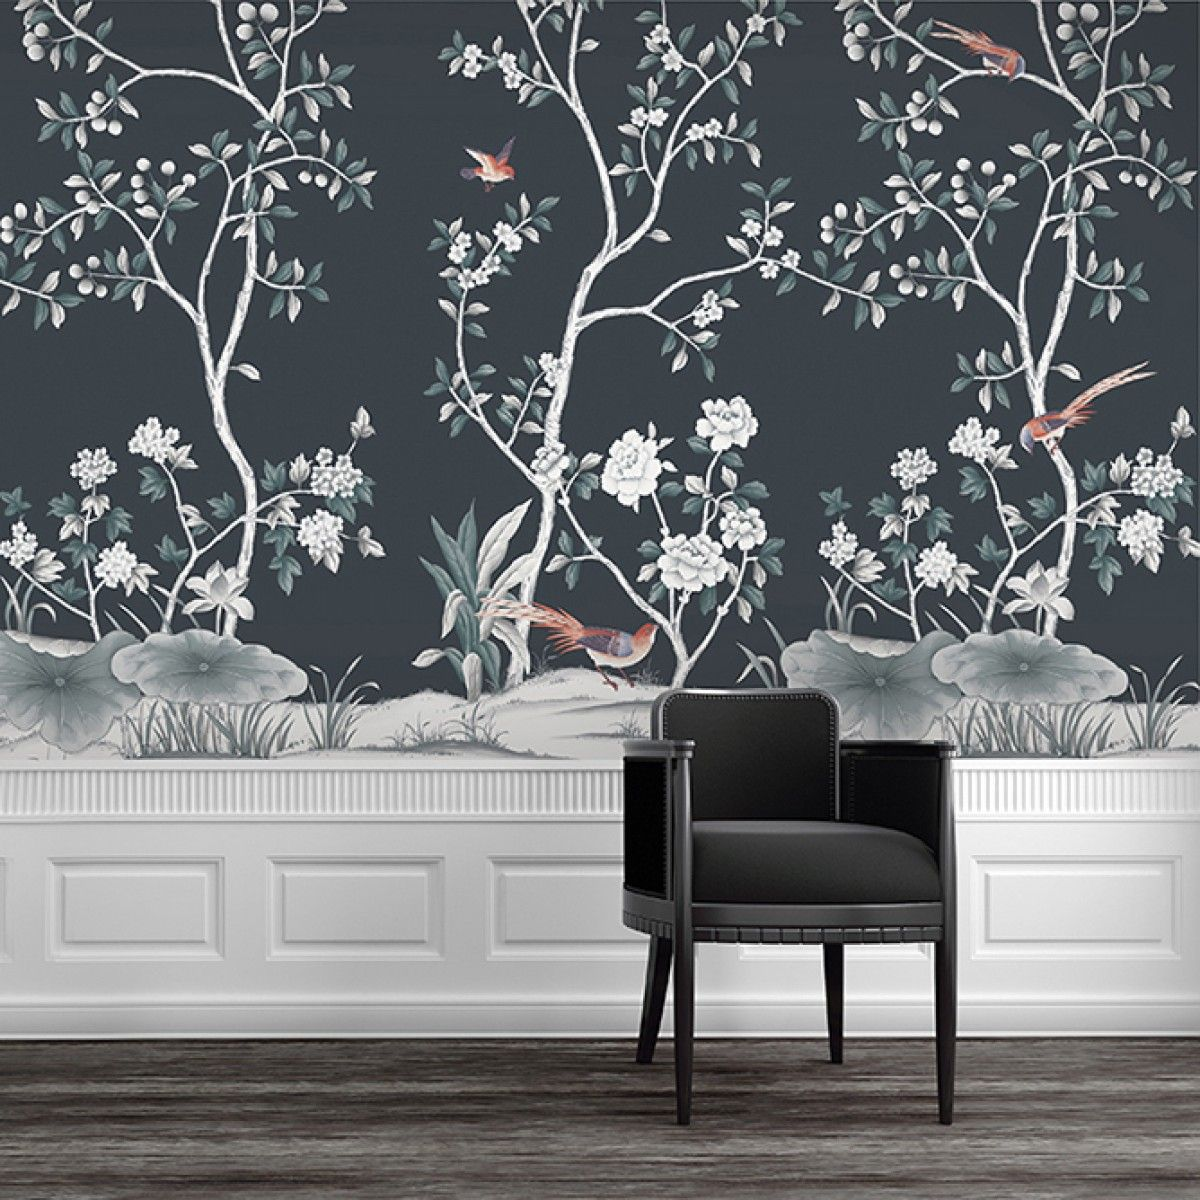 LILLY CHINOISERIE SHOP Tempaper Designs